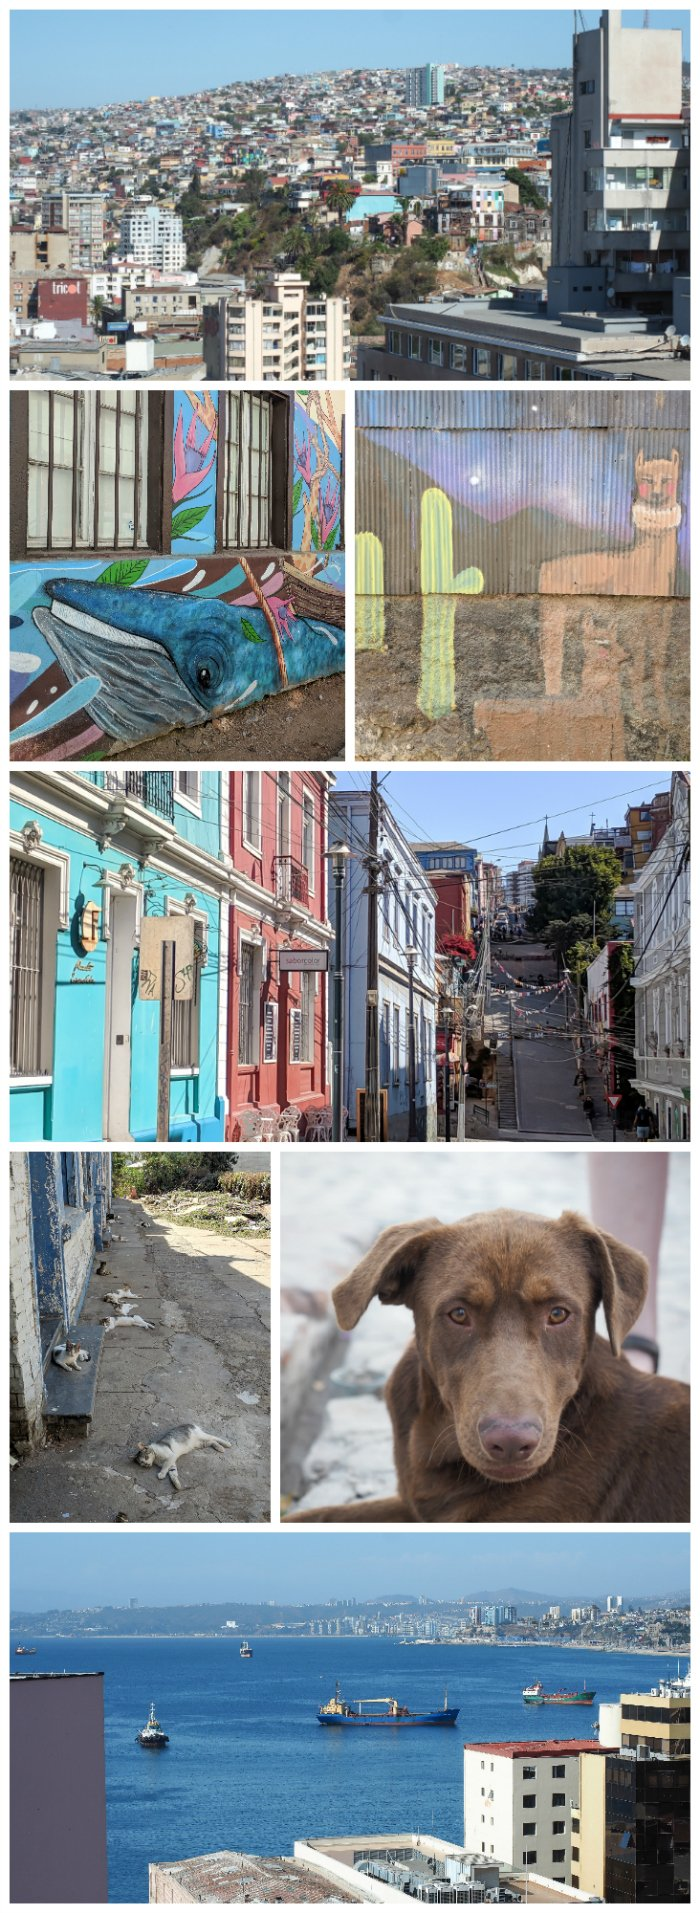 How to Spend One Week in Chile and Cover All the Bases   Wandering through the port city of Valparaiso and checking out the street art #chile #valpo #aerialviews #valparaiso #whattodoinchile #weekinchile #streetart